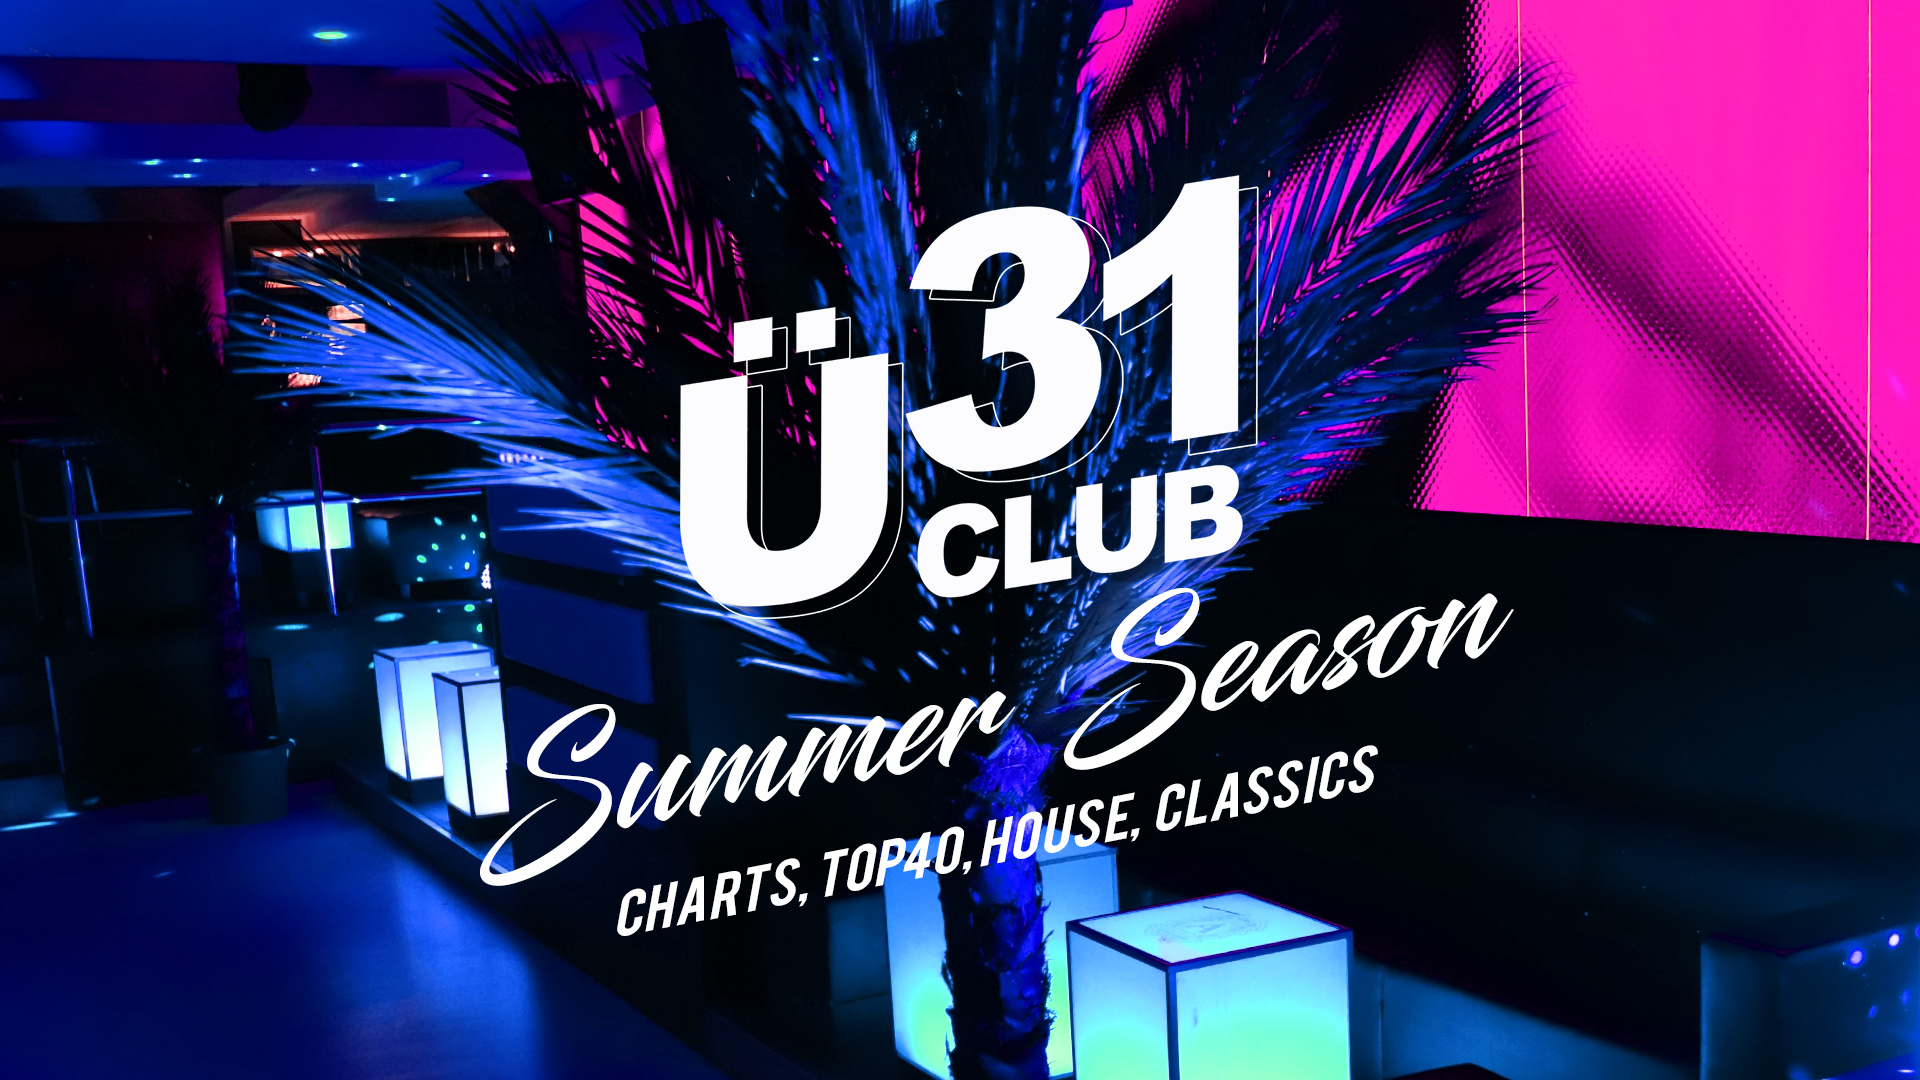 Ü31 Club Berlin - Summer Season